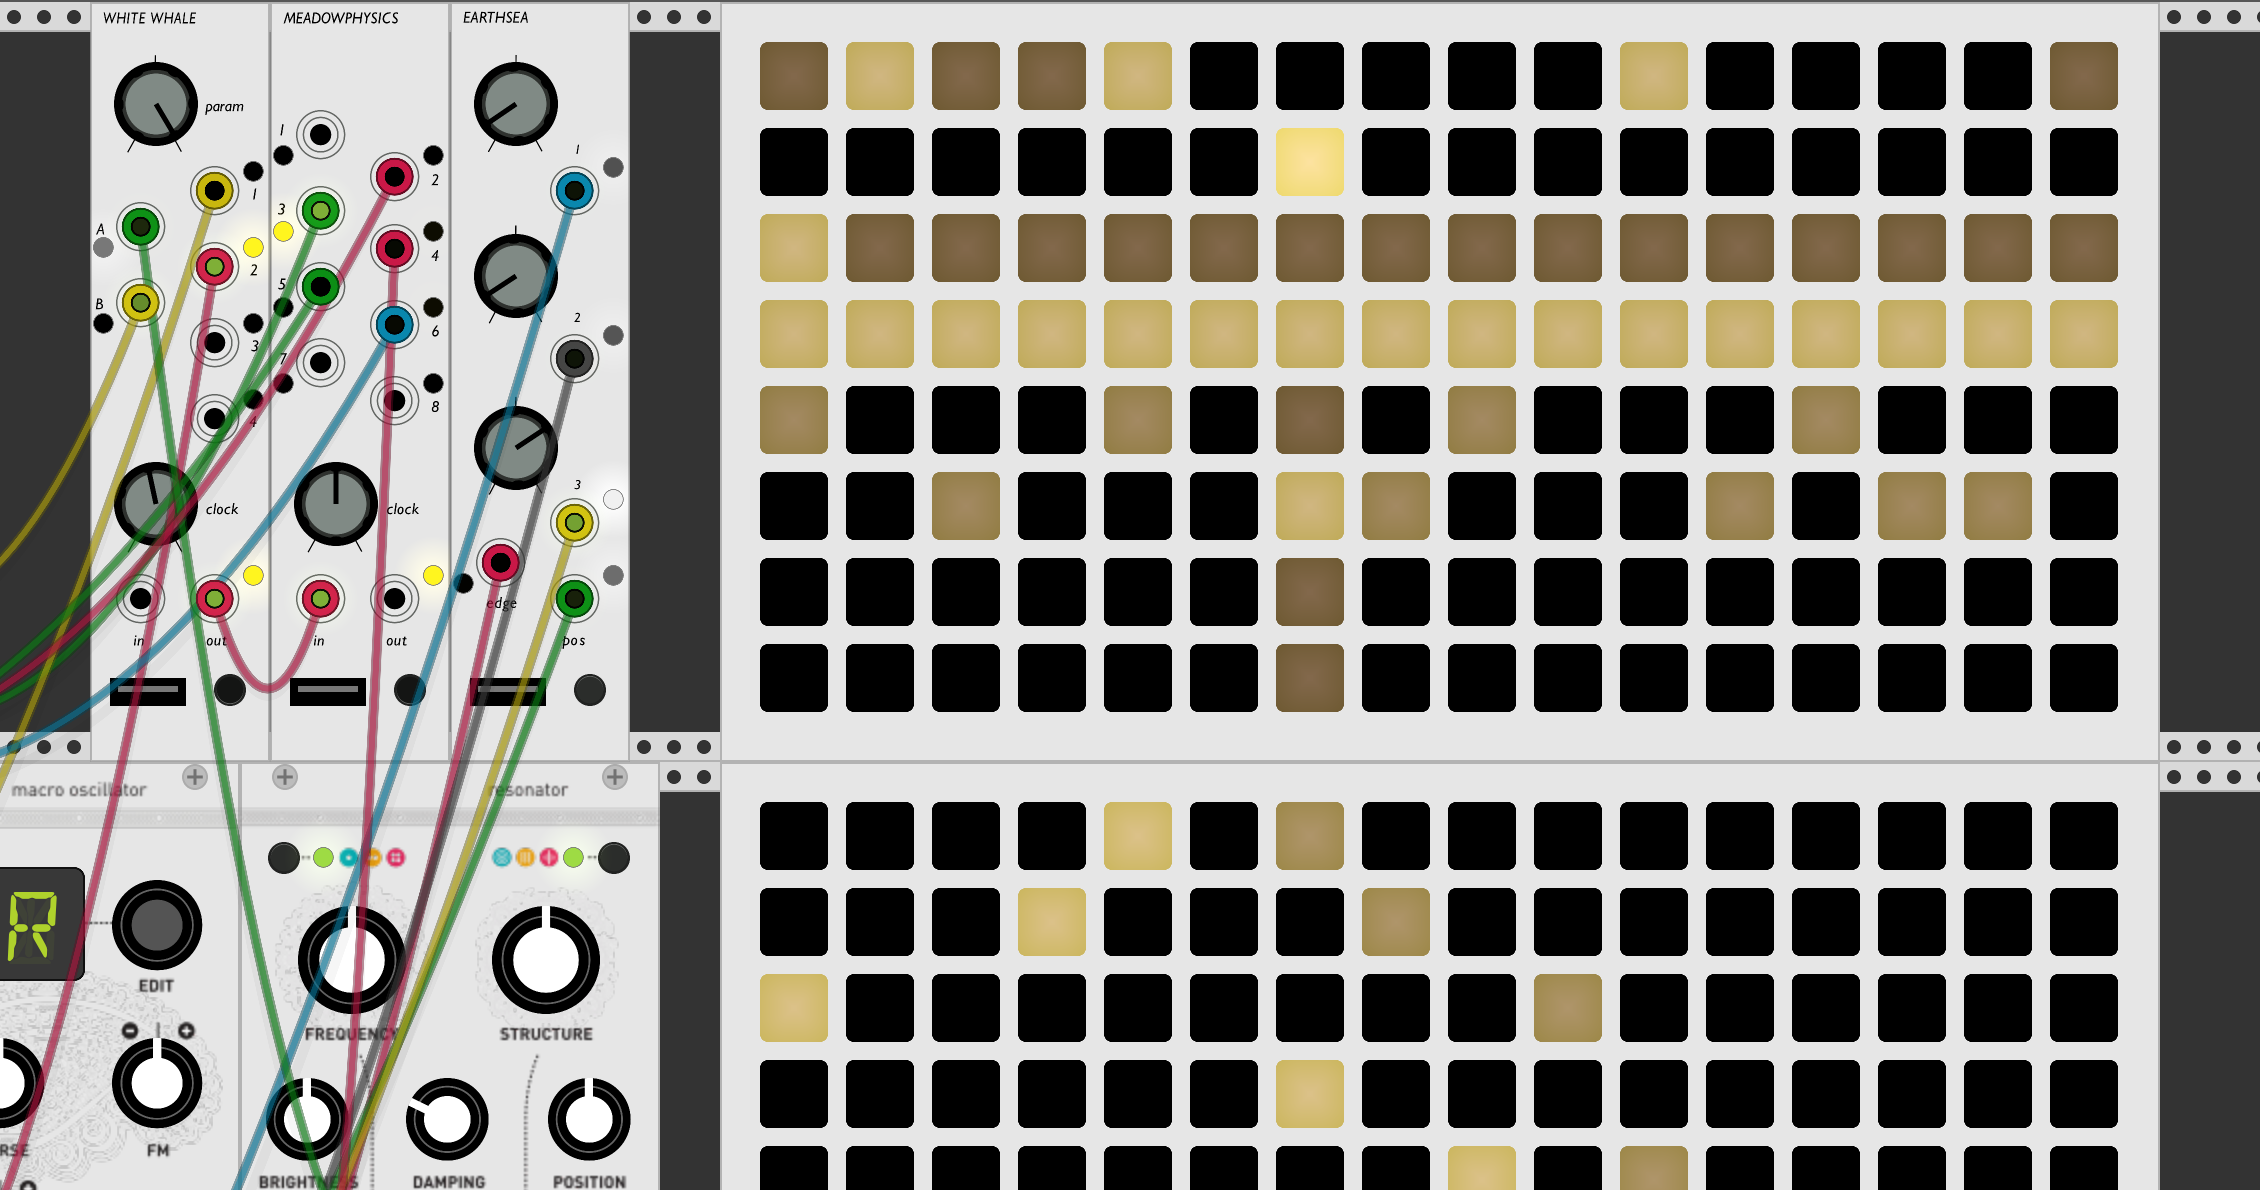 monome modules and virtual grid in VCVRack